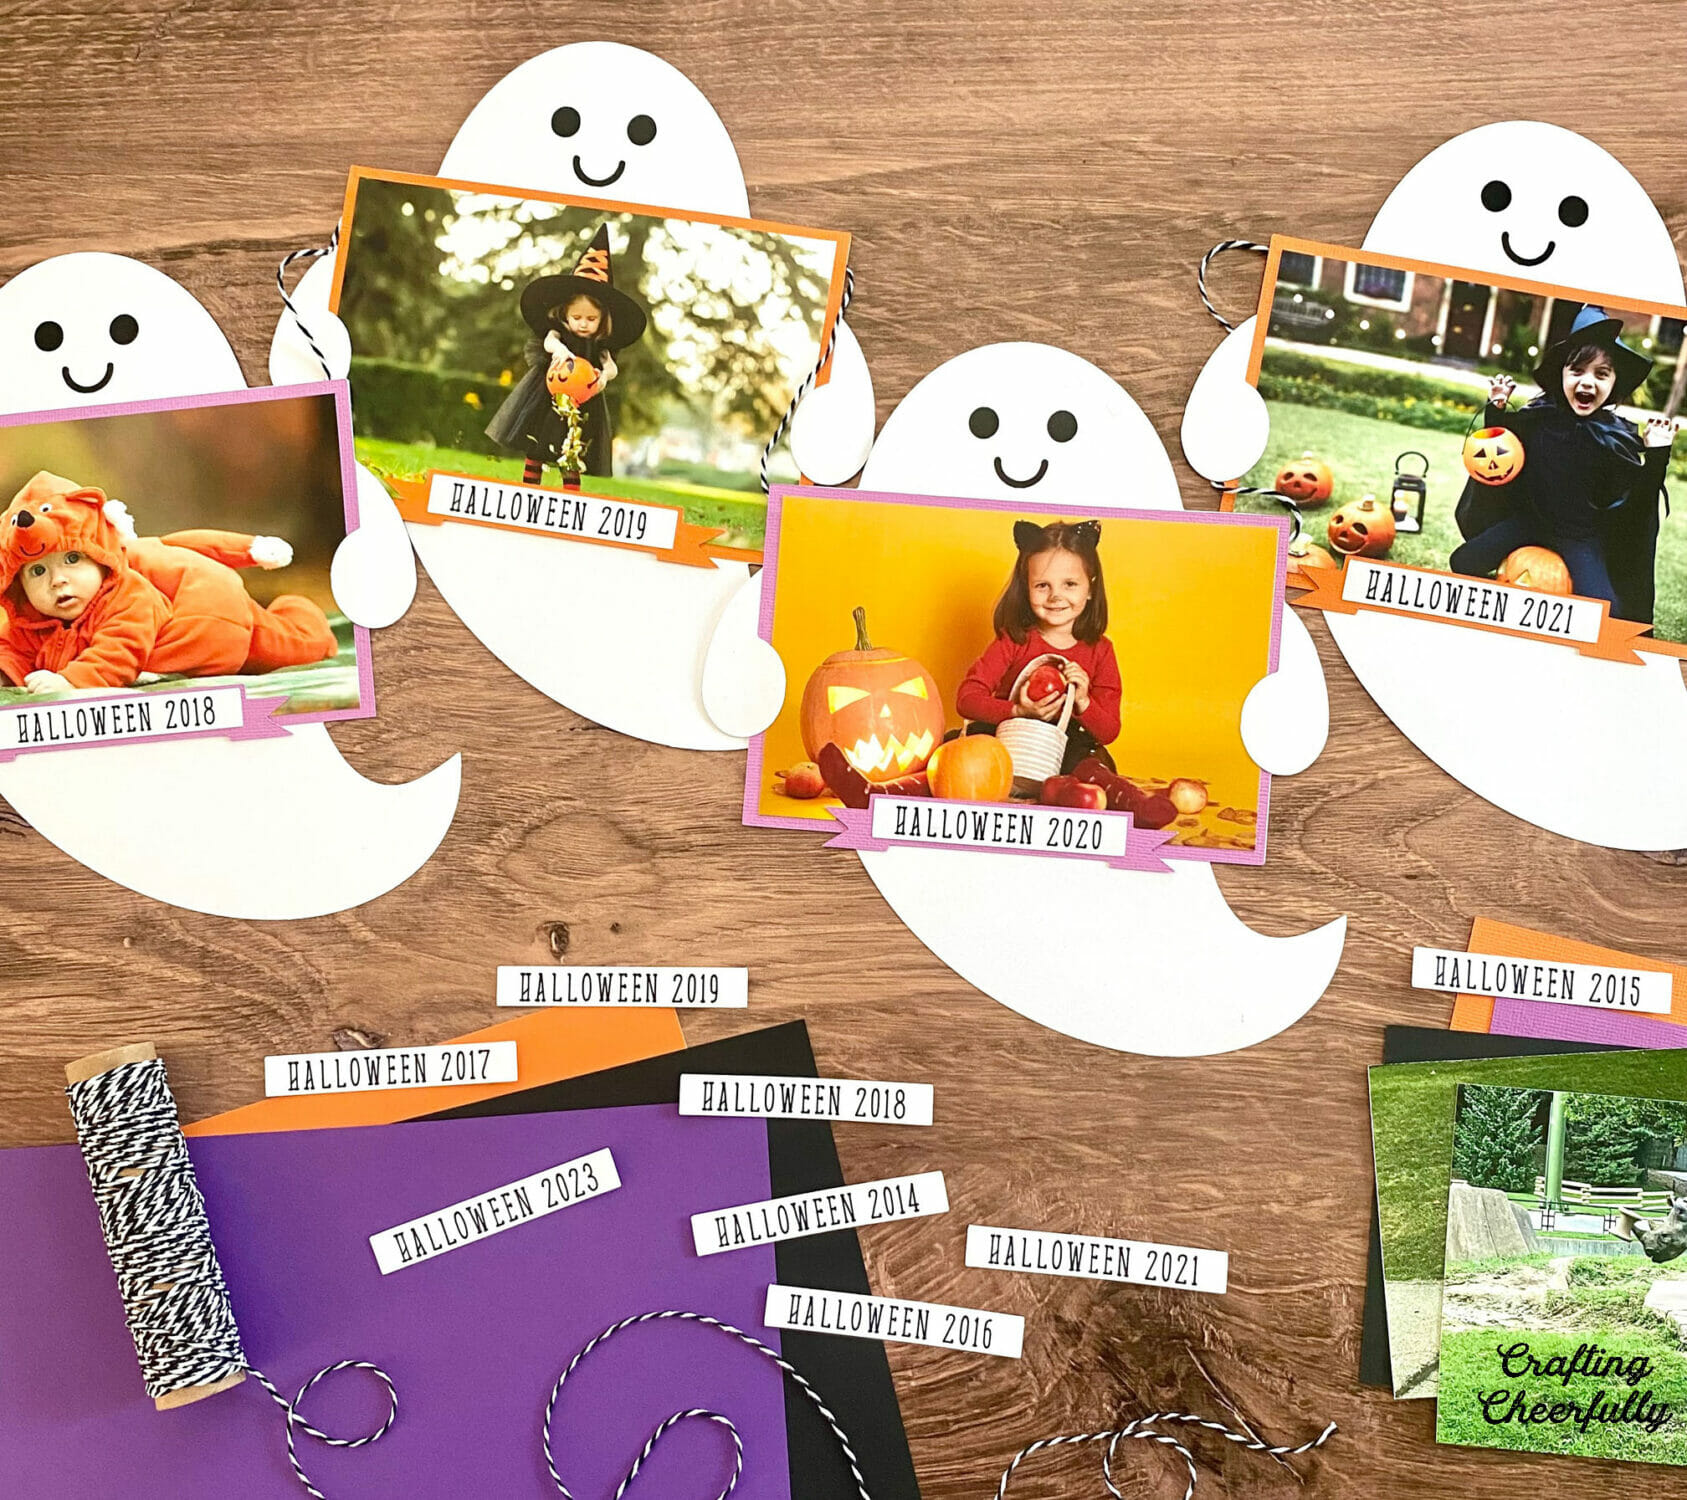 Paper Ghost Banner with ghosts holding photos and the year labeled.